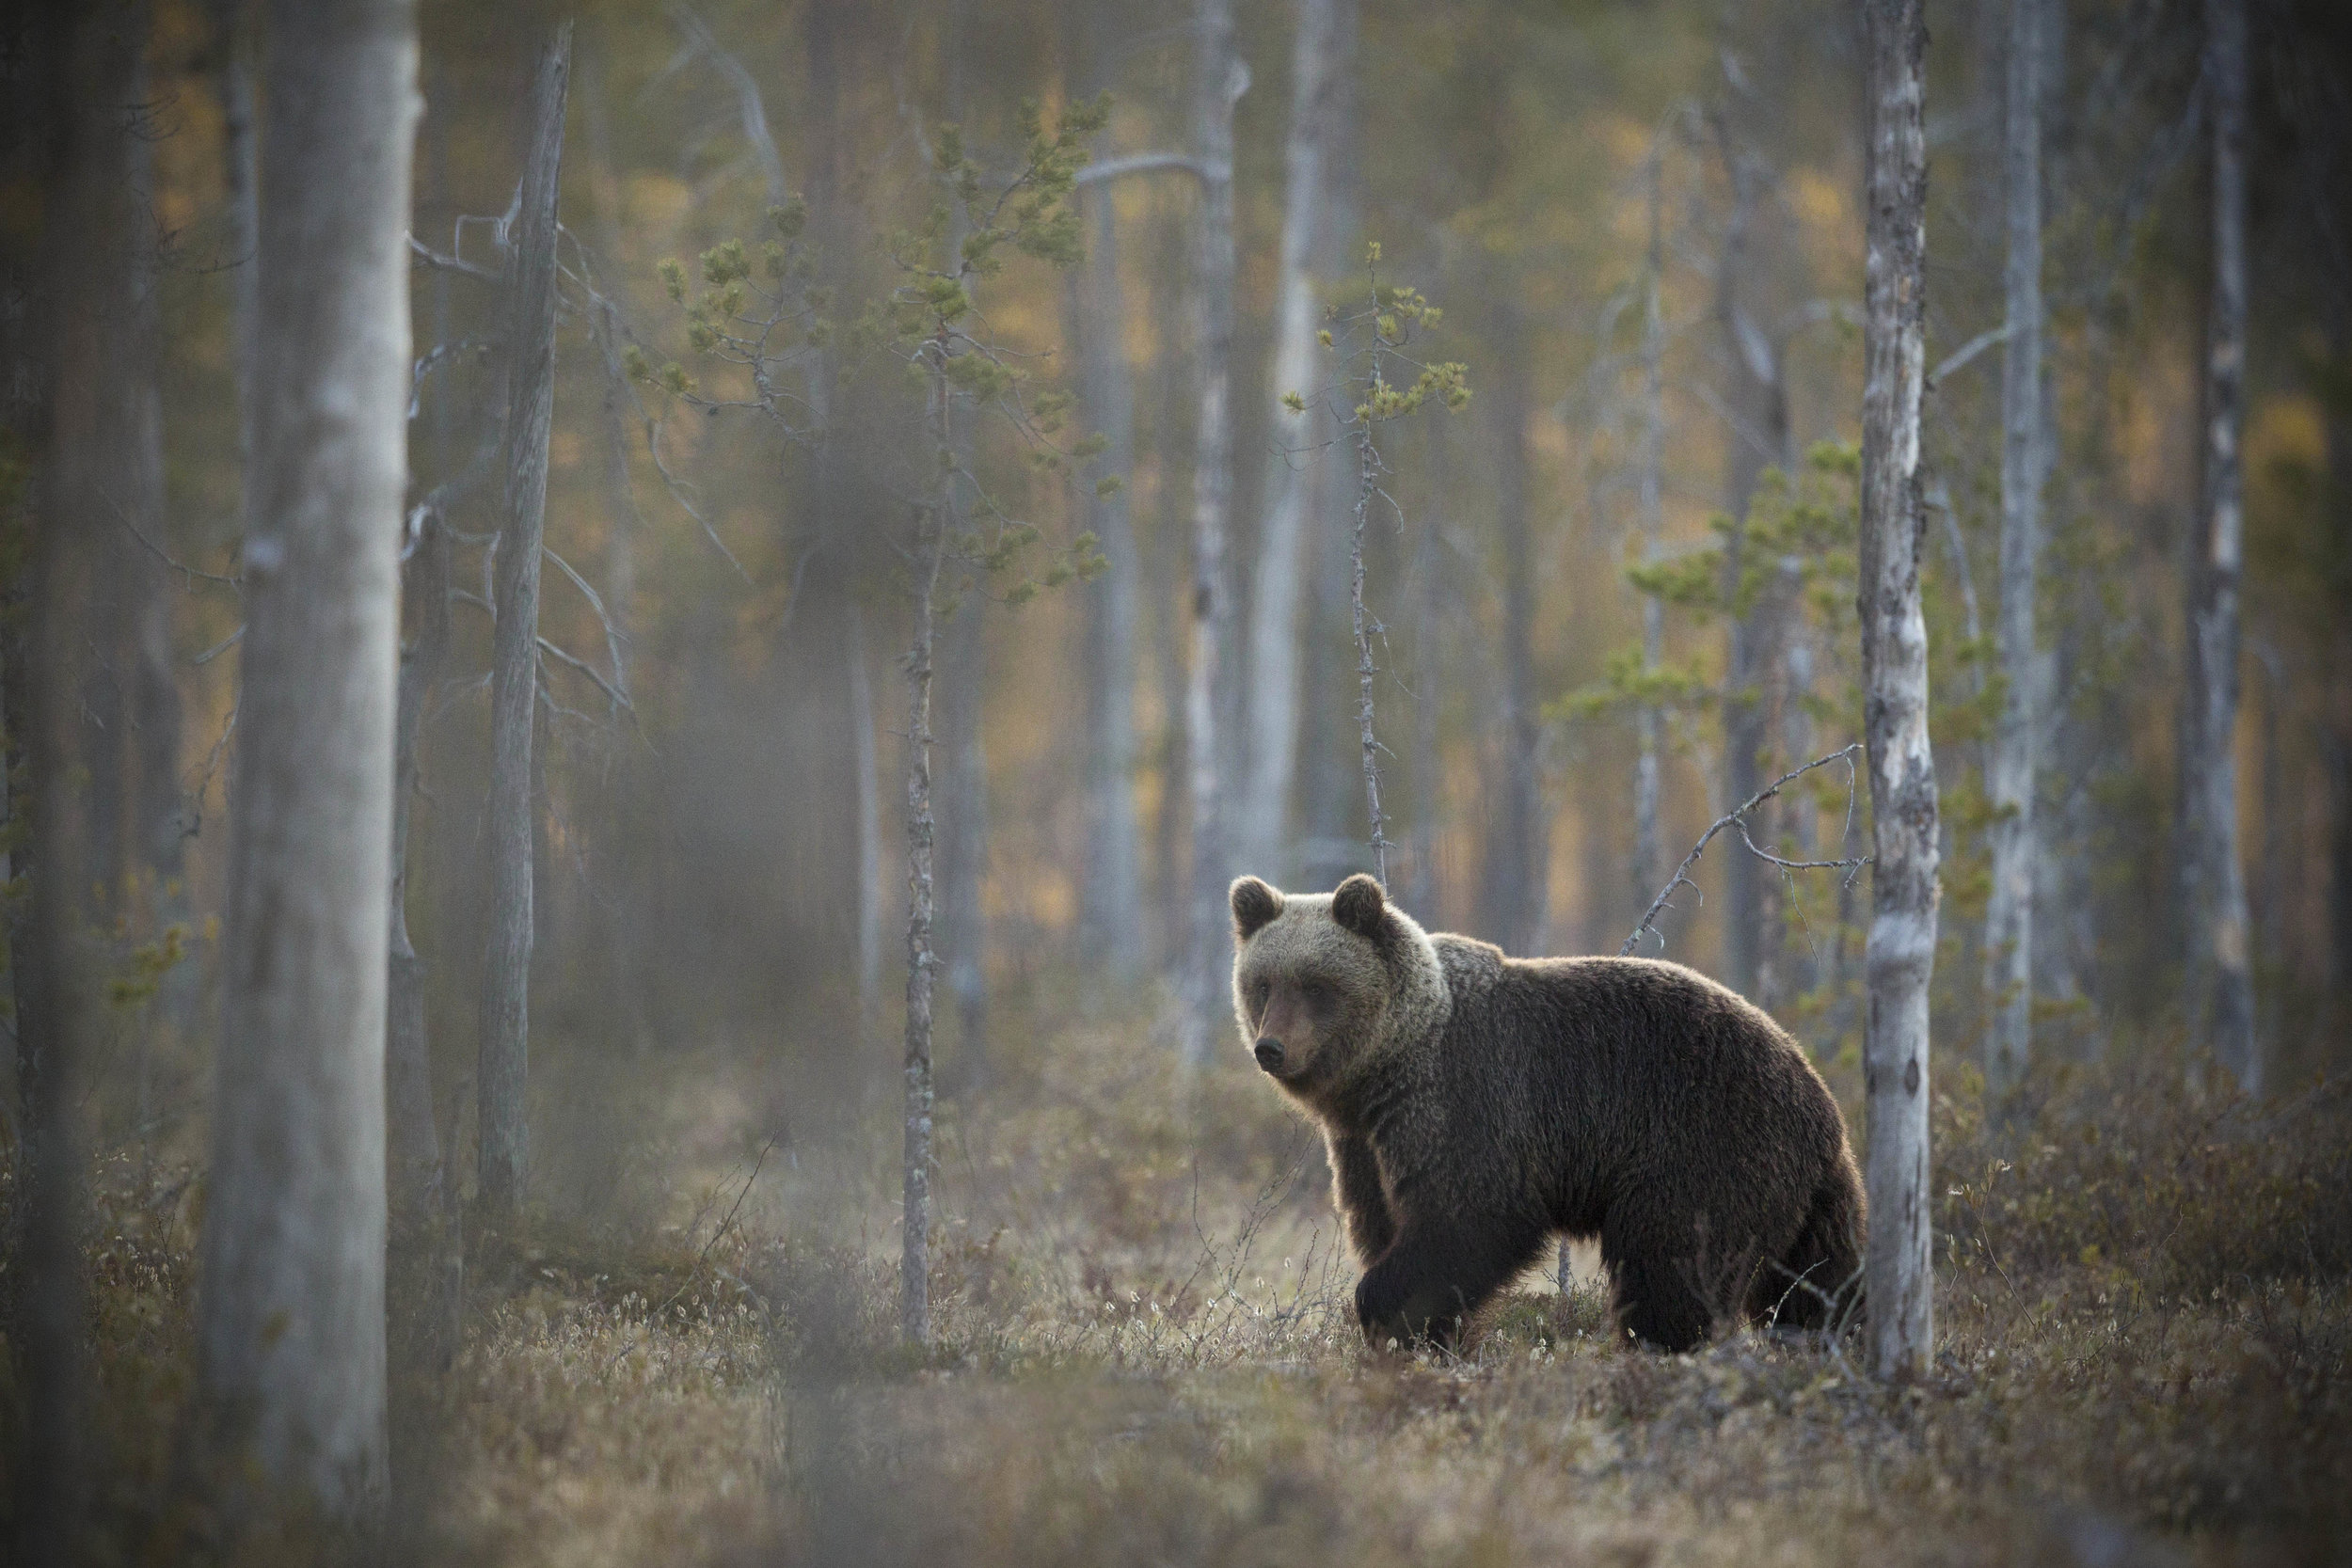 The male bear nicknamed 'Pointer', pauses infront of the skeleton trees at sunset.